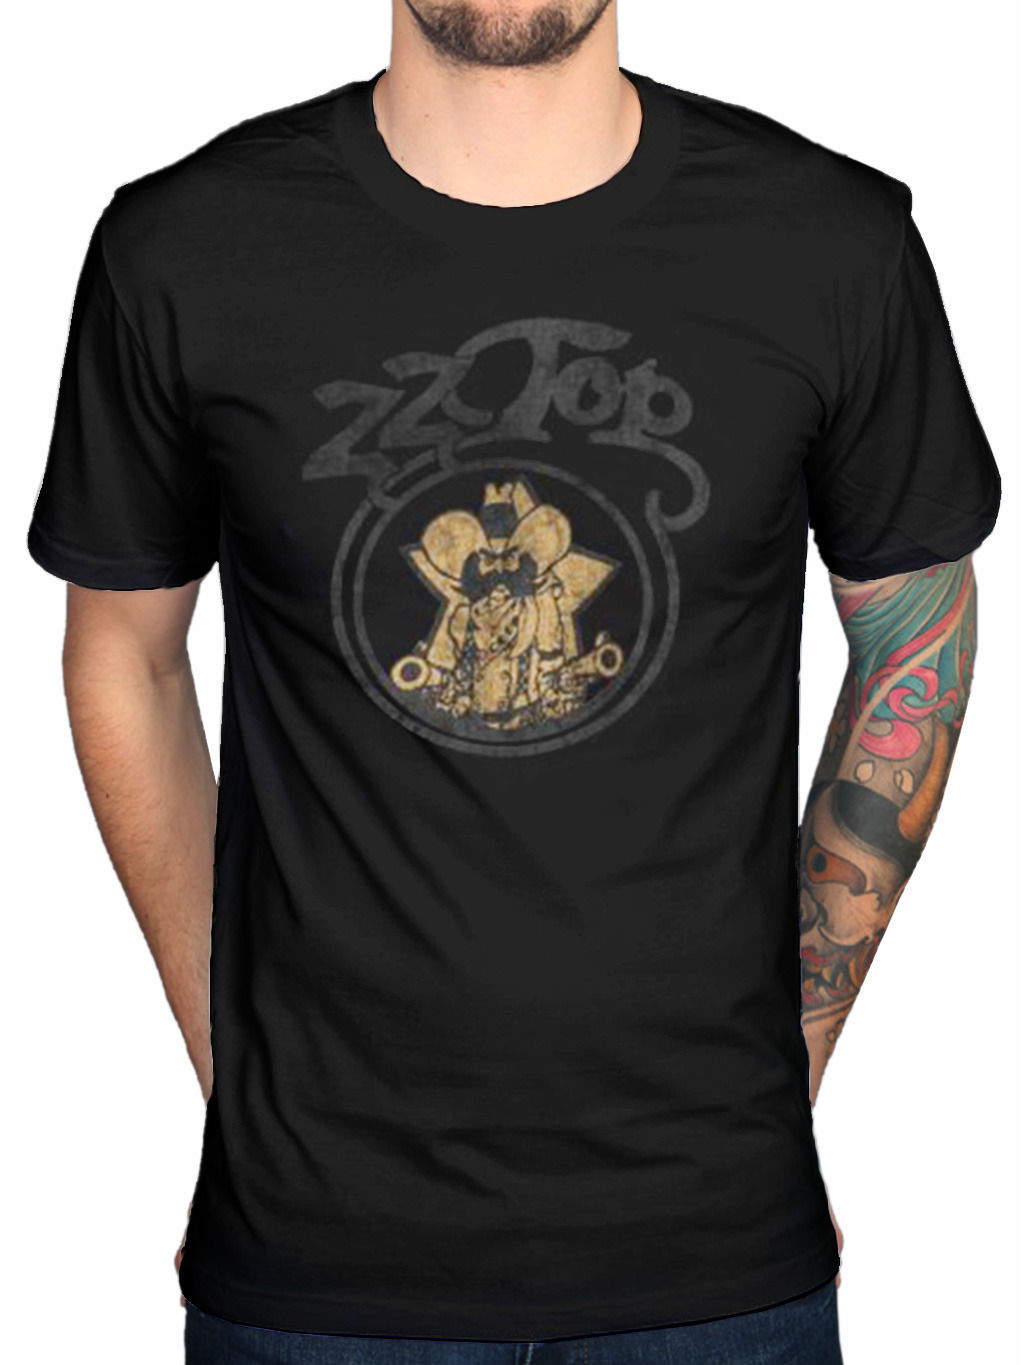 Design t shirt and get paid - Print T Shirt Zz Top Outlaw Village T Shirt Texicali La Futura I Gotsta Get Paid